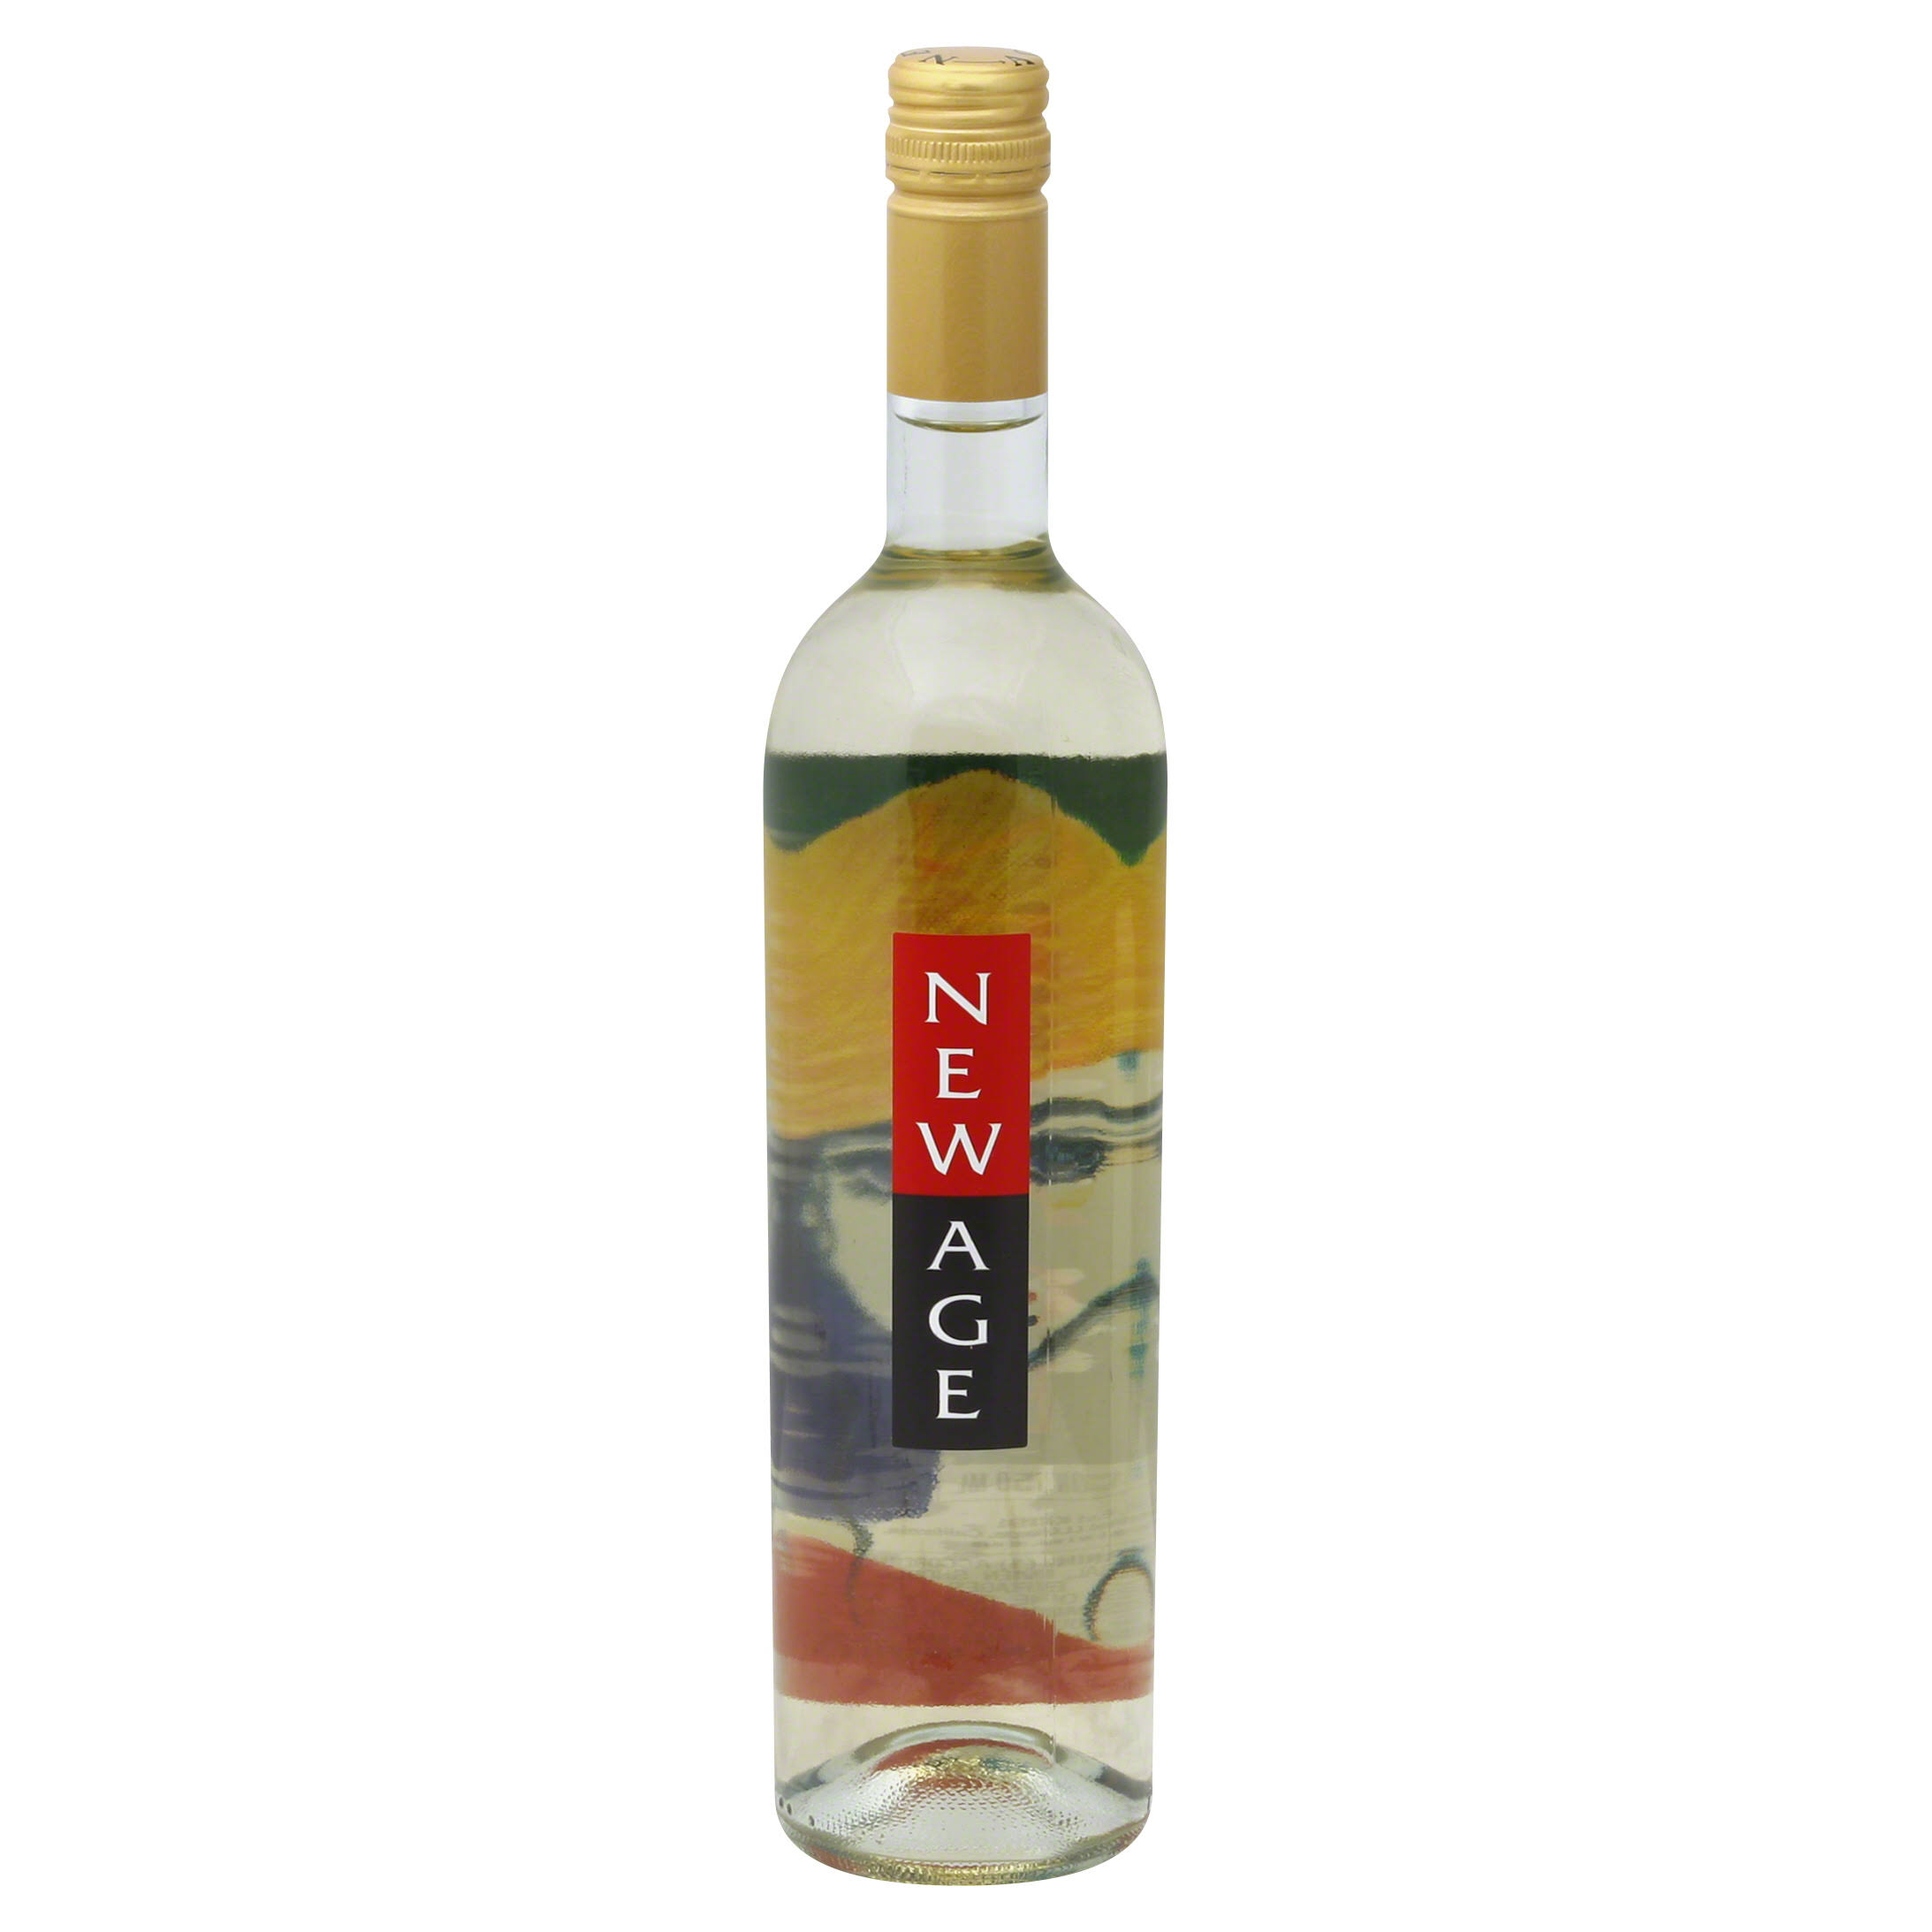 New Age White Wine - 750ml